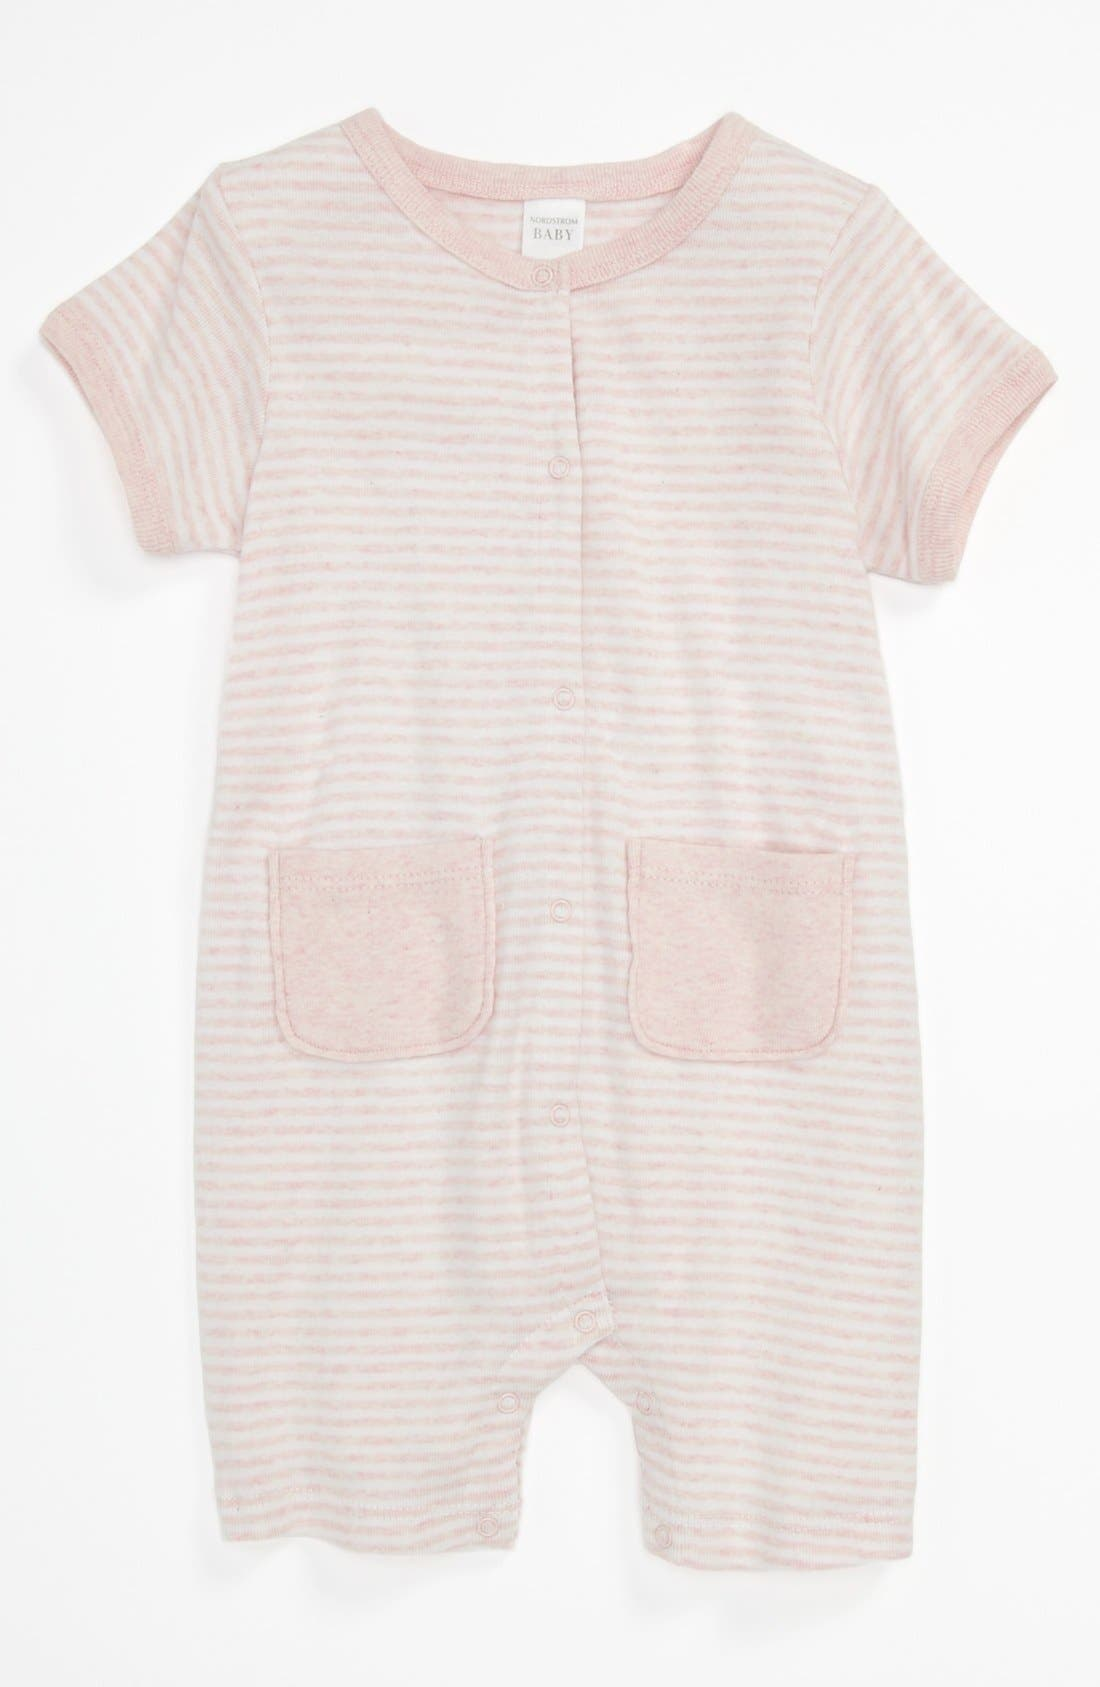 Alternate Image 1 Selected - Nordstrom Baby 'Welcome Home' Romper (Baby)